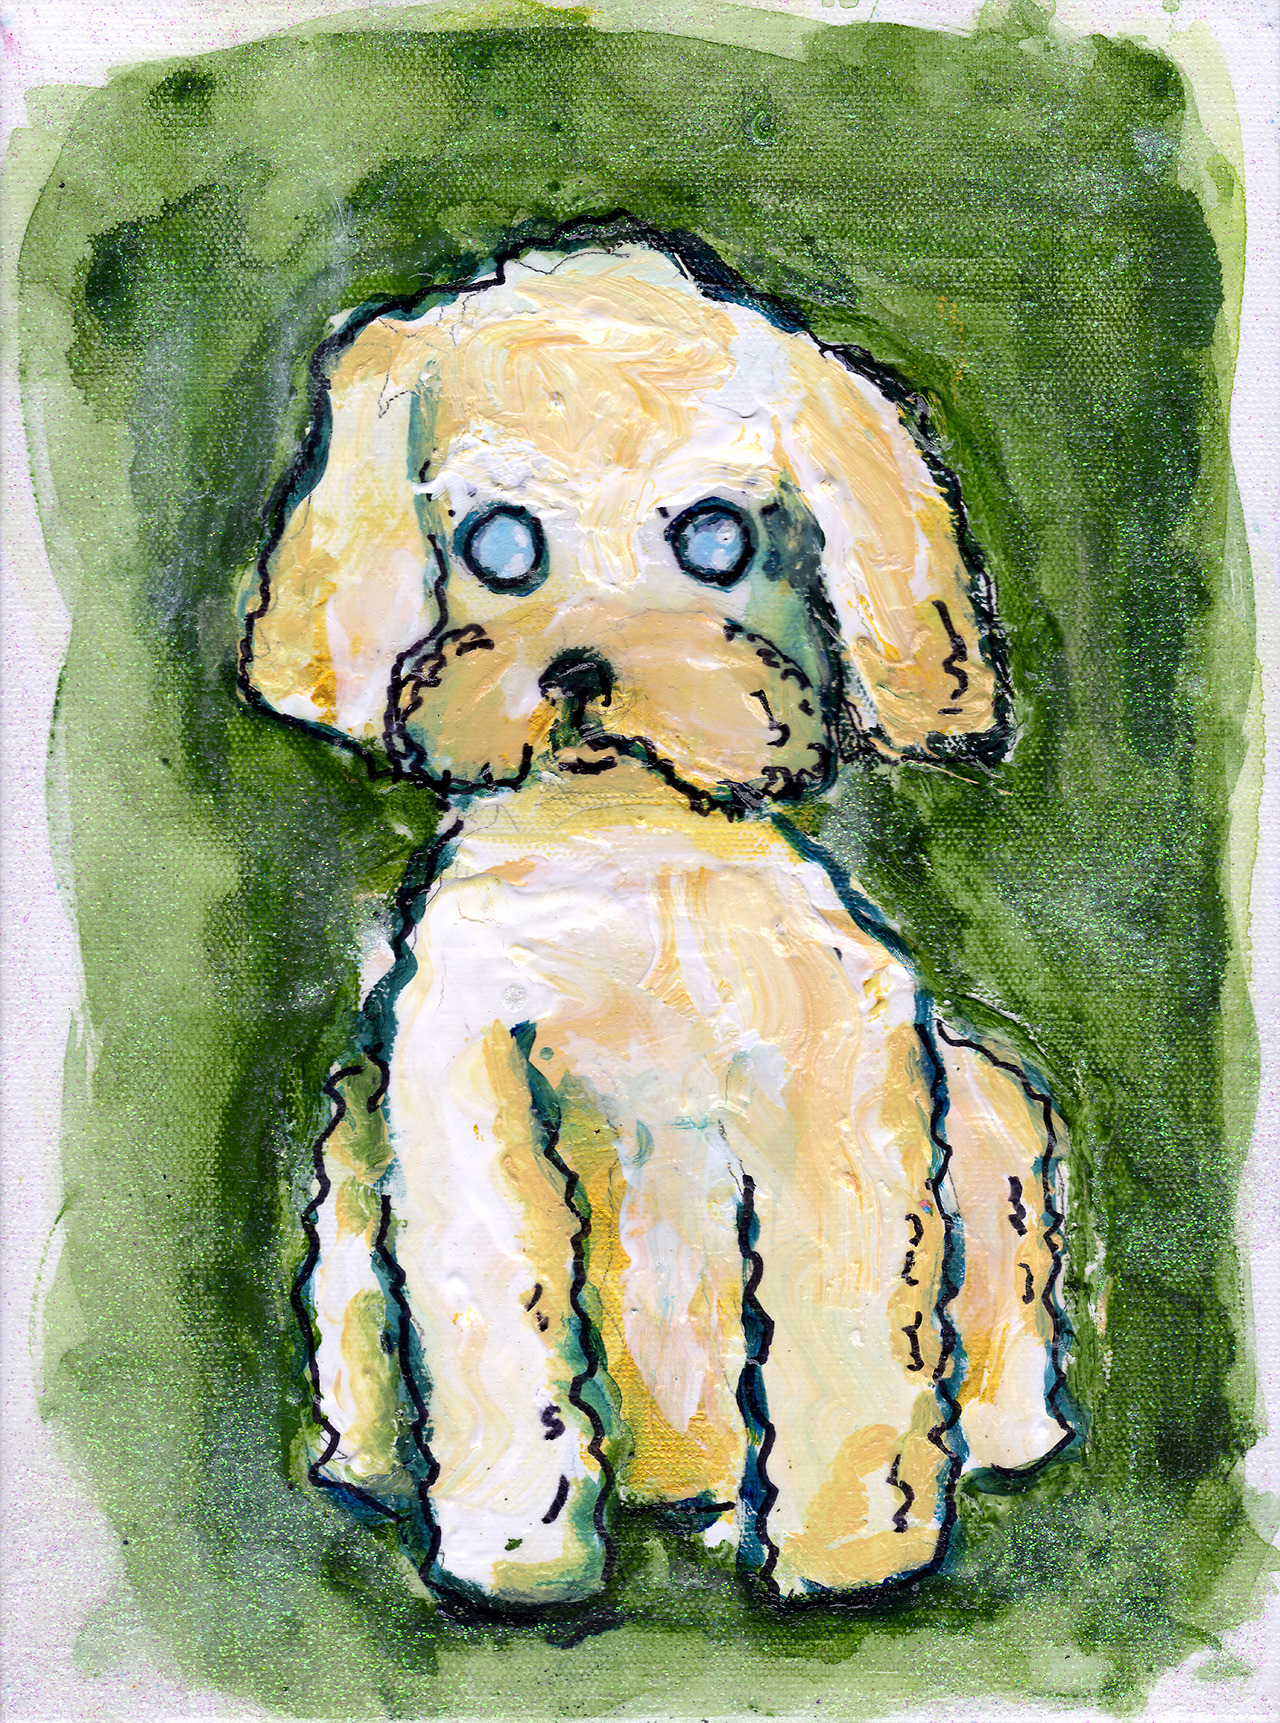 12/21/13 -  Squiggly   Rylee!    This is a kickstarter piece! My cousin Christine and her husband Chris wanted me to paint my Aunt Molly's dog, Rylee. They're a dog-loving folk, that side of the family. Even though apparently Chris and Christine tried to kill their dogs today by leaving a bunch of fudge lying around. Rookies. Anyway, I hope you guys all like the piece and thanks for backing my kickstarter! Happy holidays!